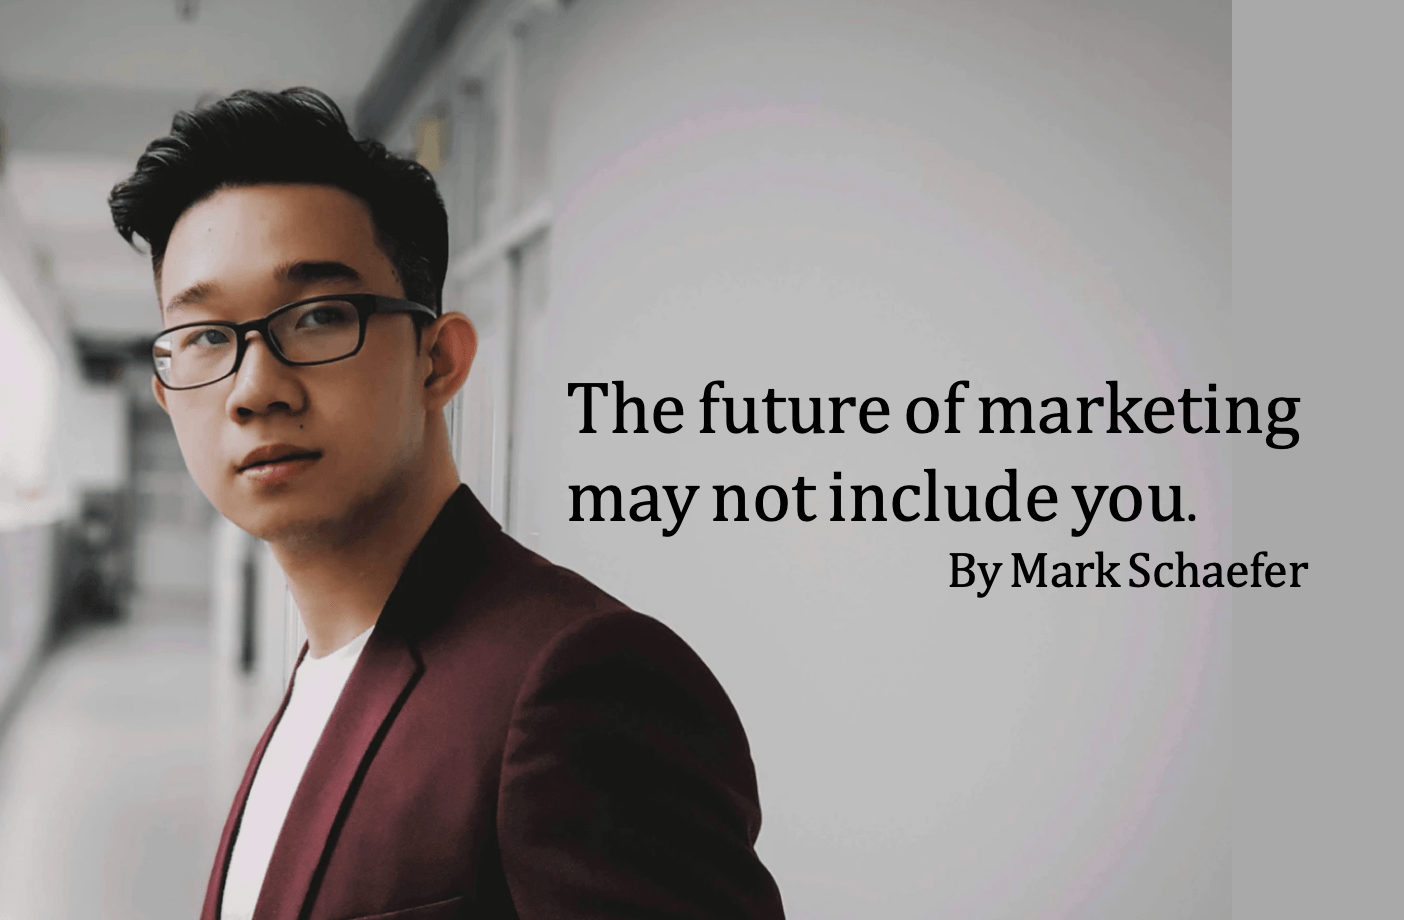 The future of marketing is here. It may not include you.